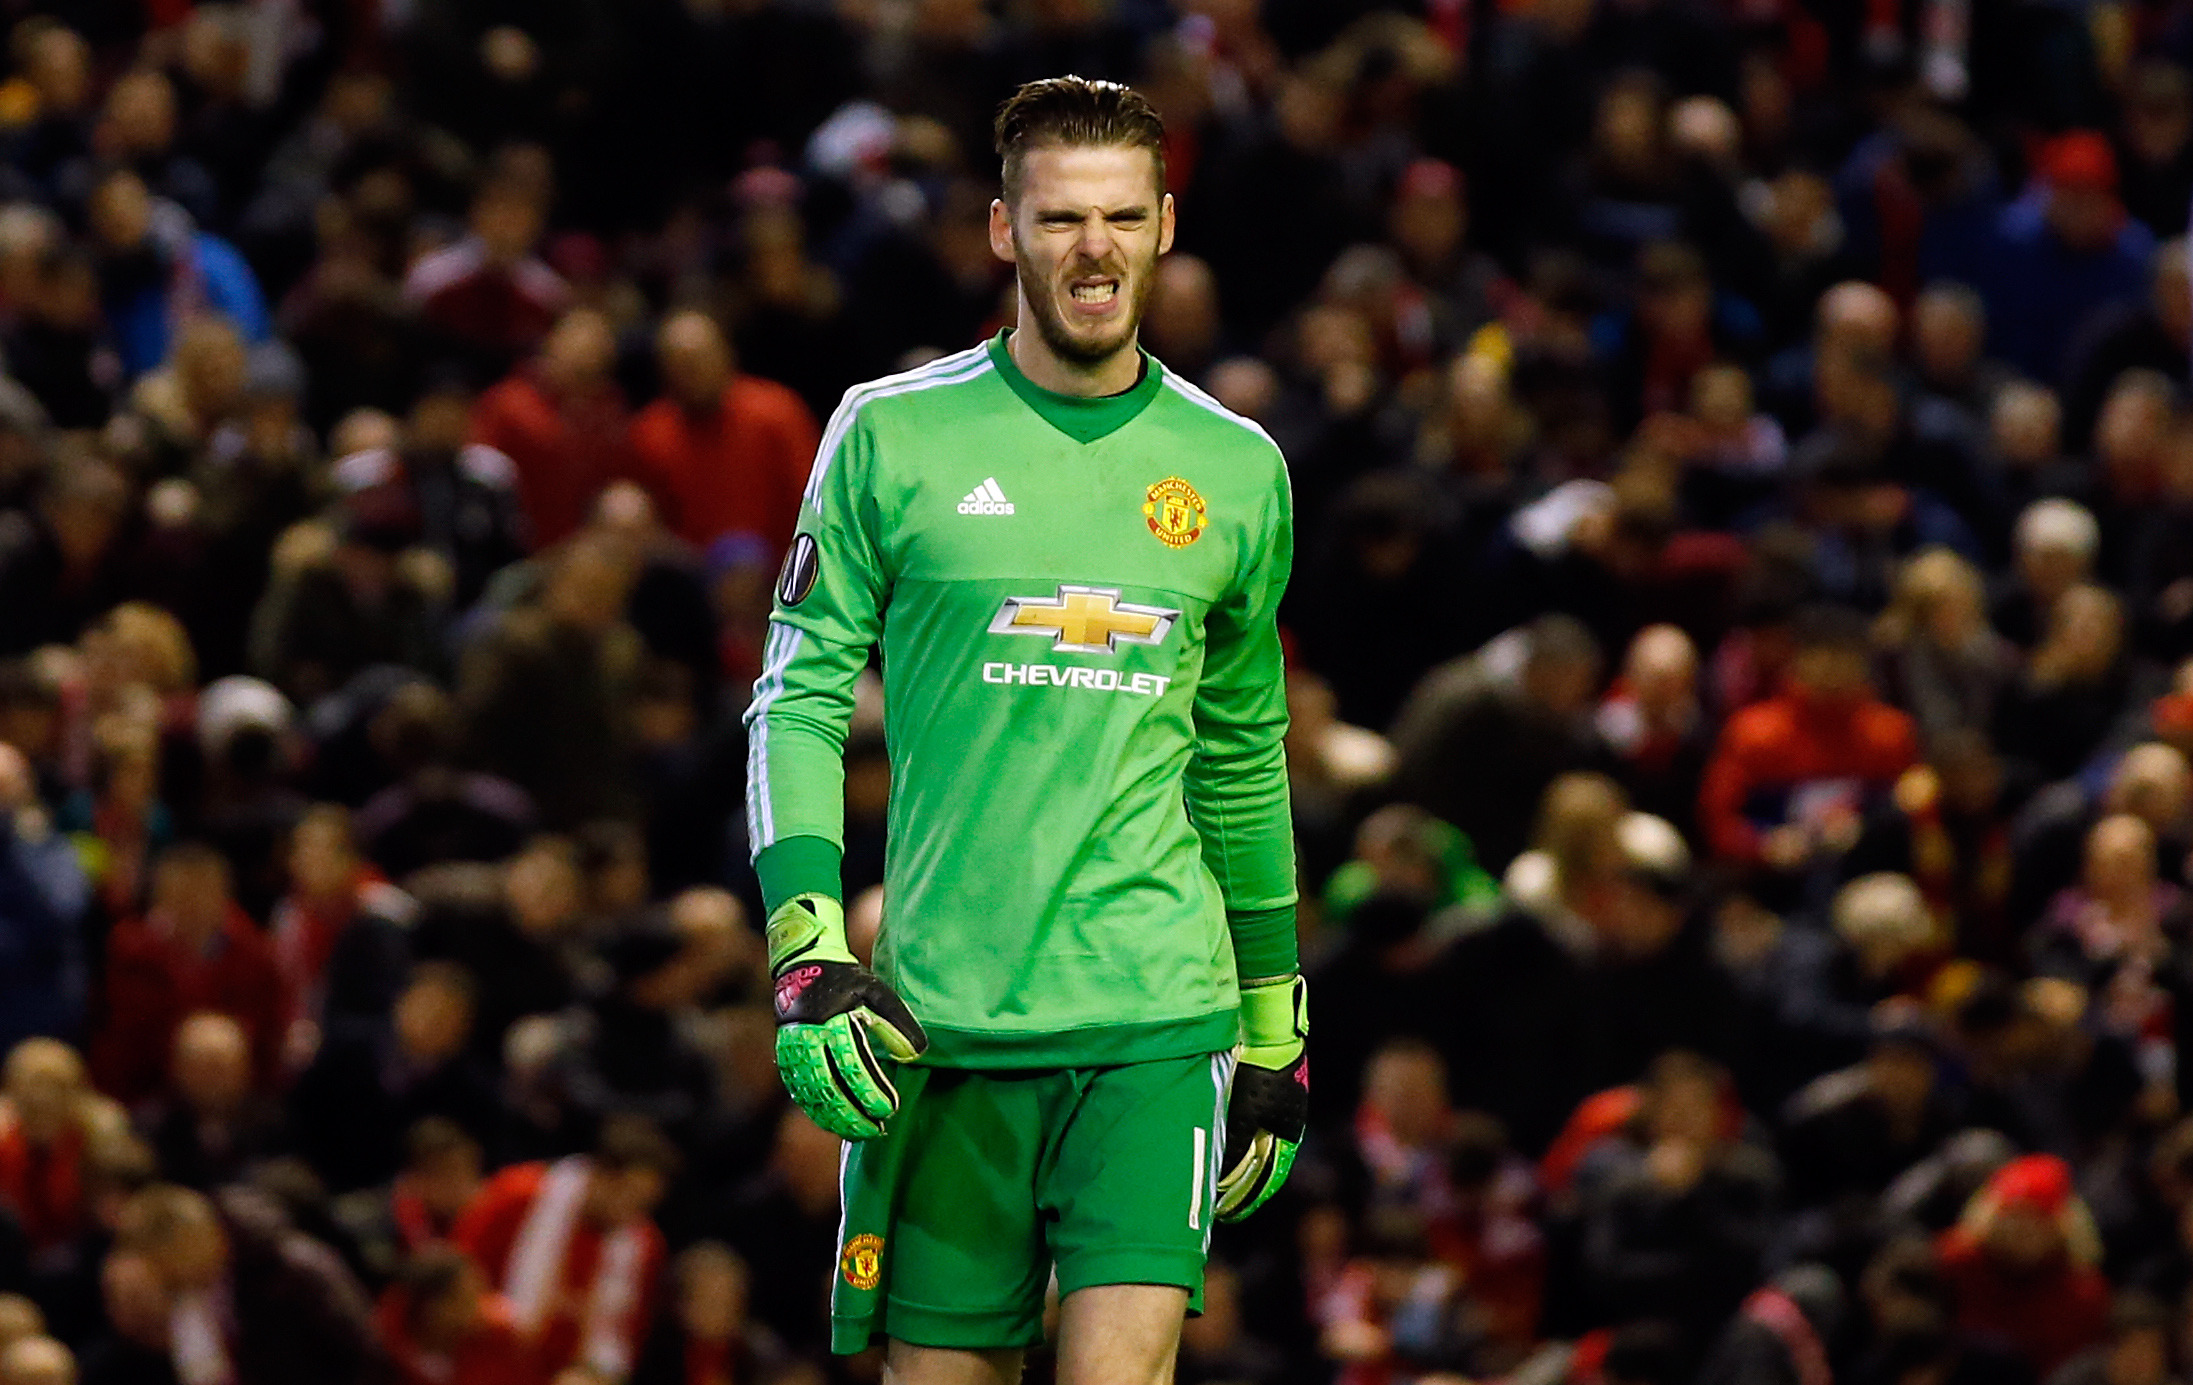 De Gea has been far more worthy of high wages, even with his recent mistakes. Image: PA Images